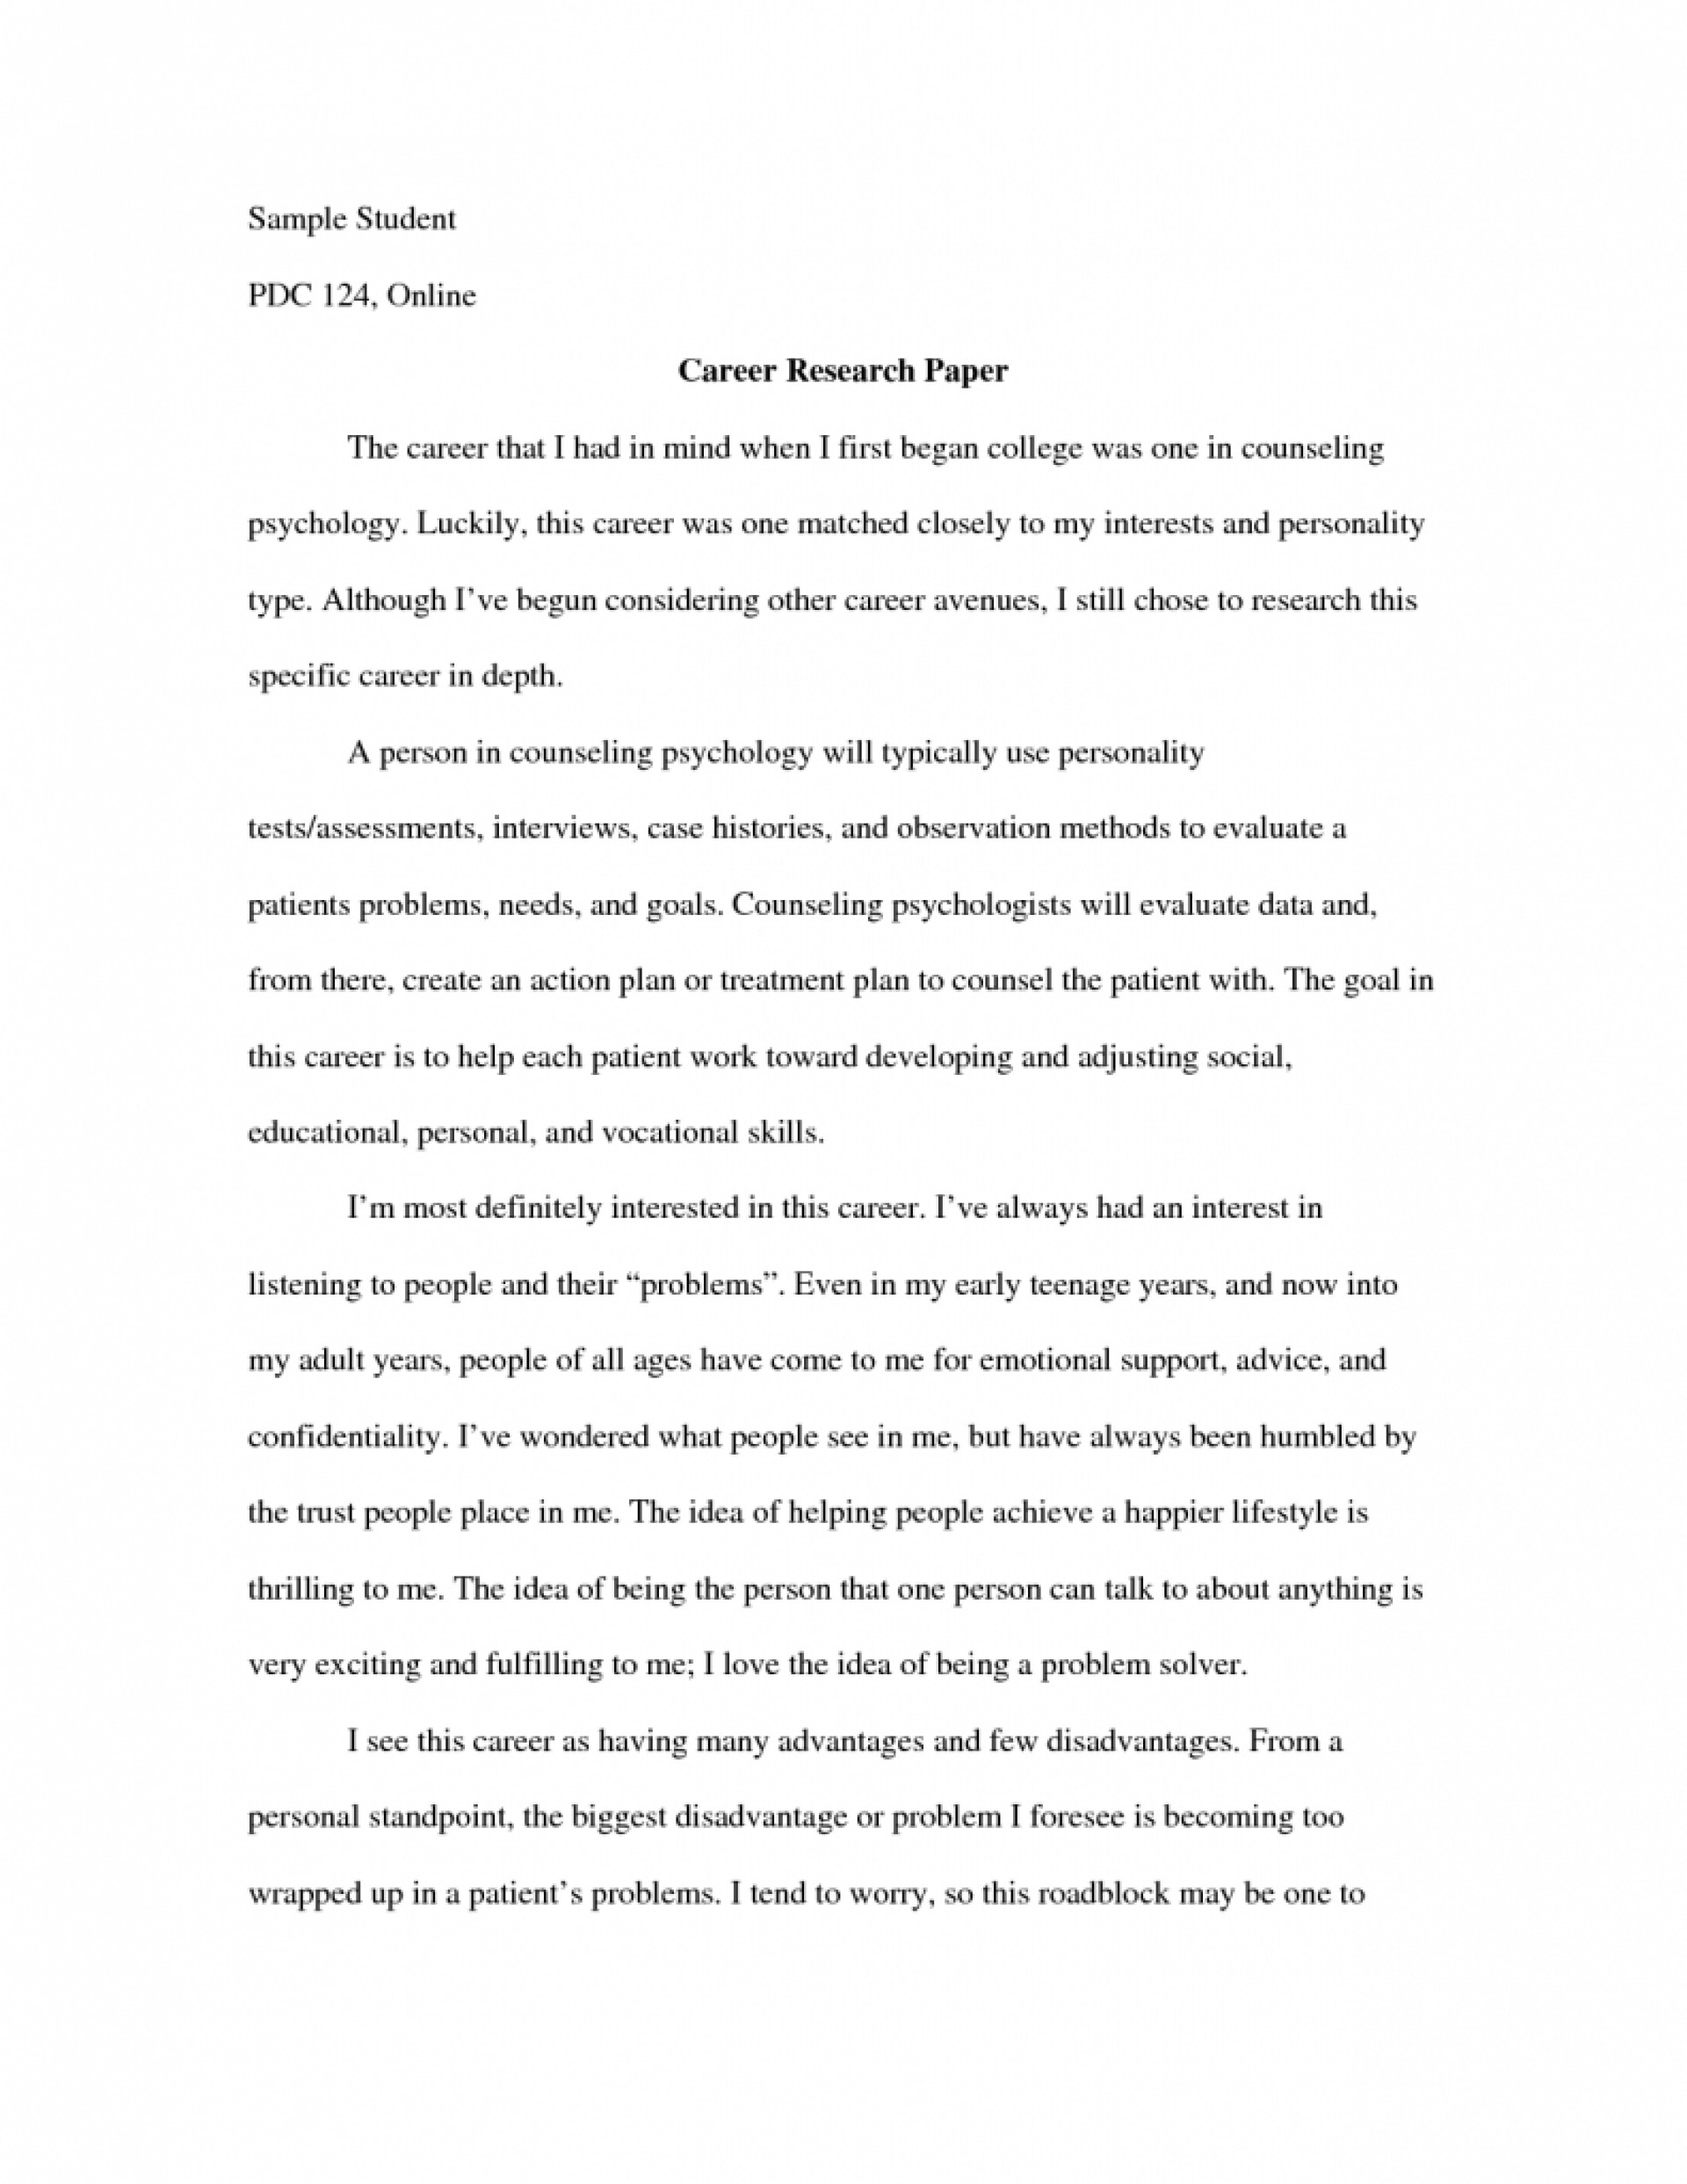 007 Career Goals Essay Internship Term Paper Writing Service How To Write An About Mys Best Goal Research Essays Amazing Rubric Example Sample 1920